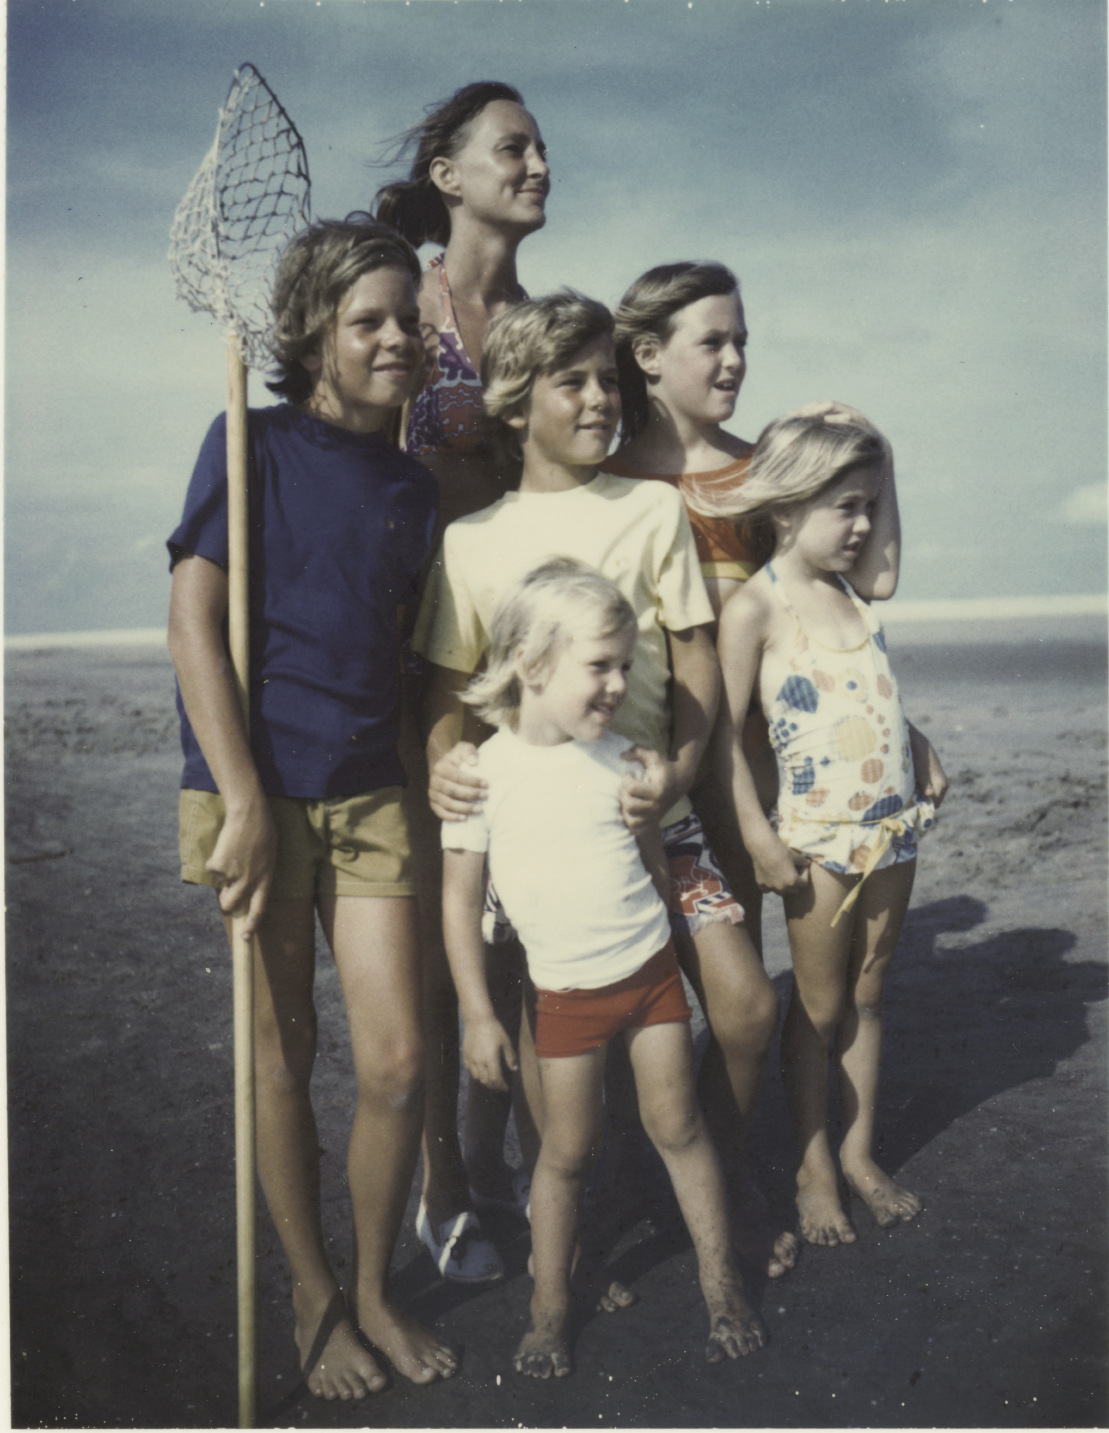 Author Edward Marshall's stepmother, Lynn, stands ready to catch crabs with her extended brood.